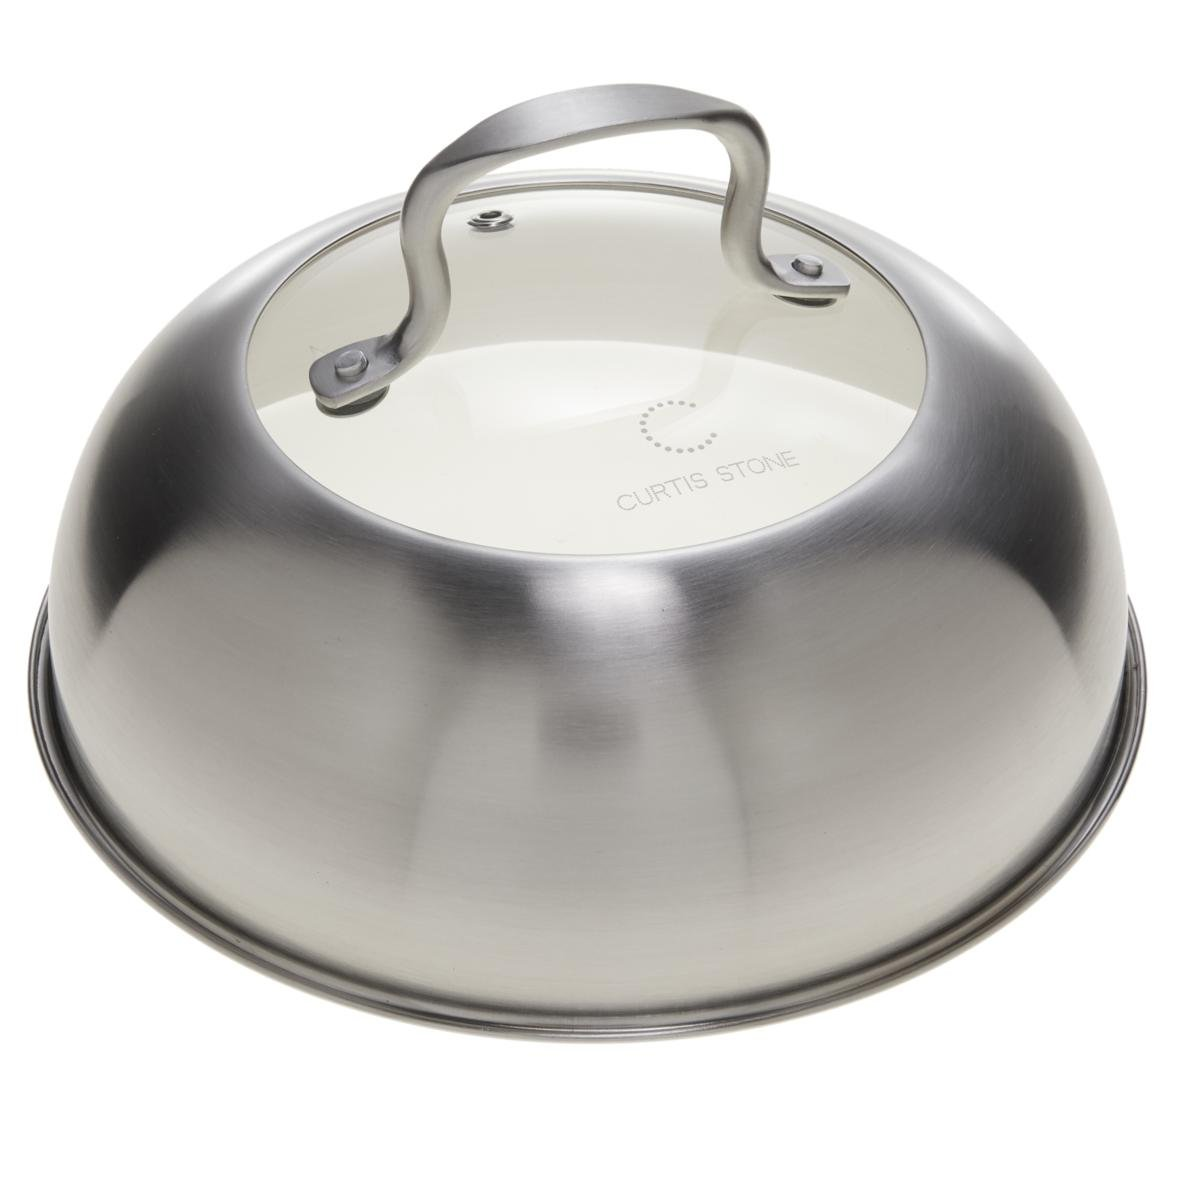 Curtis Stone Stainless Steel Food Cover Cloche